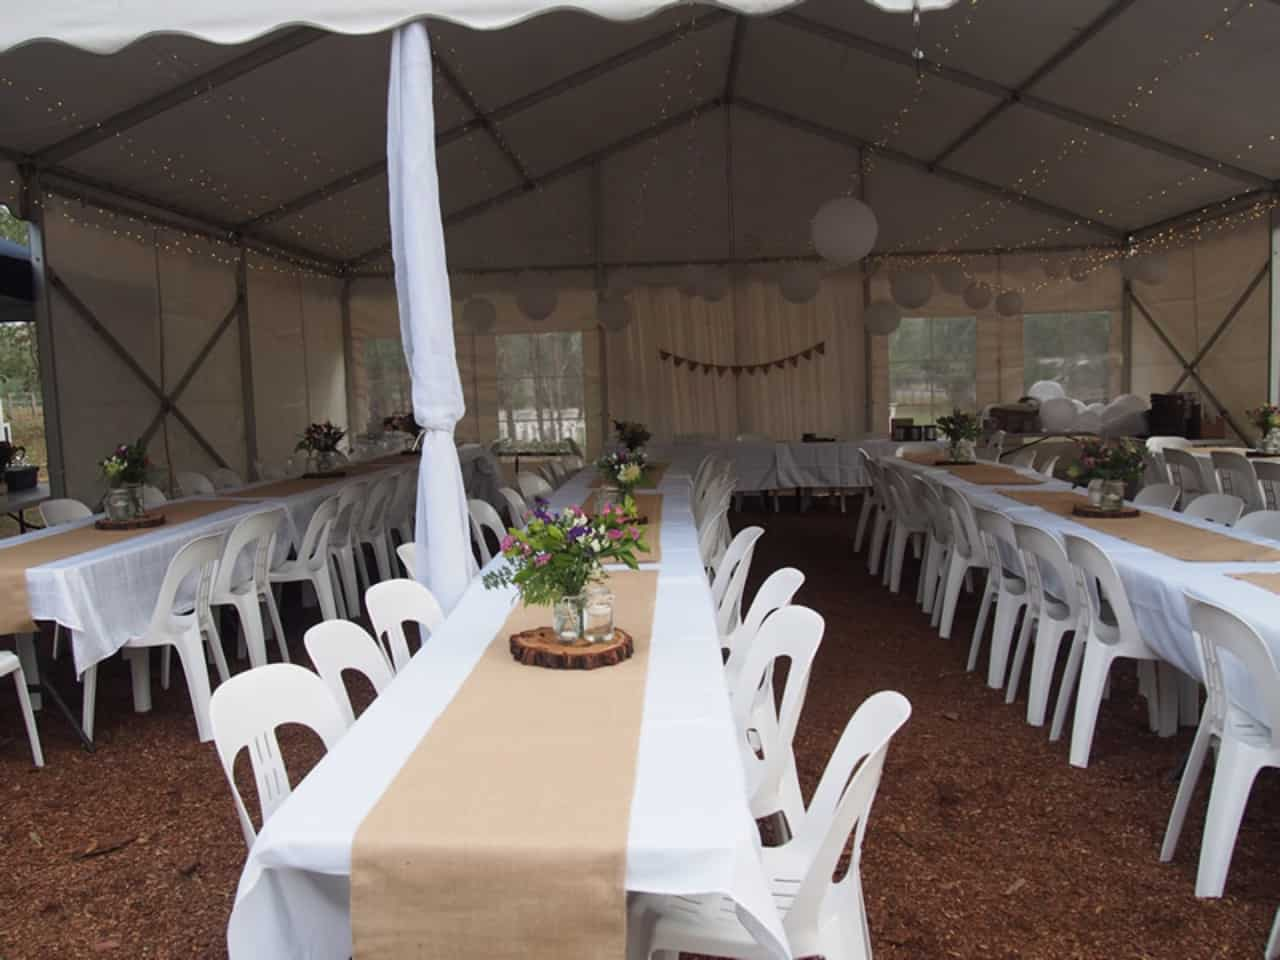 072 Party and Event Hire Business for sale 0412 179 306